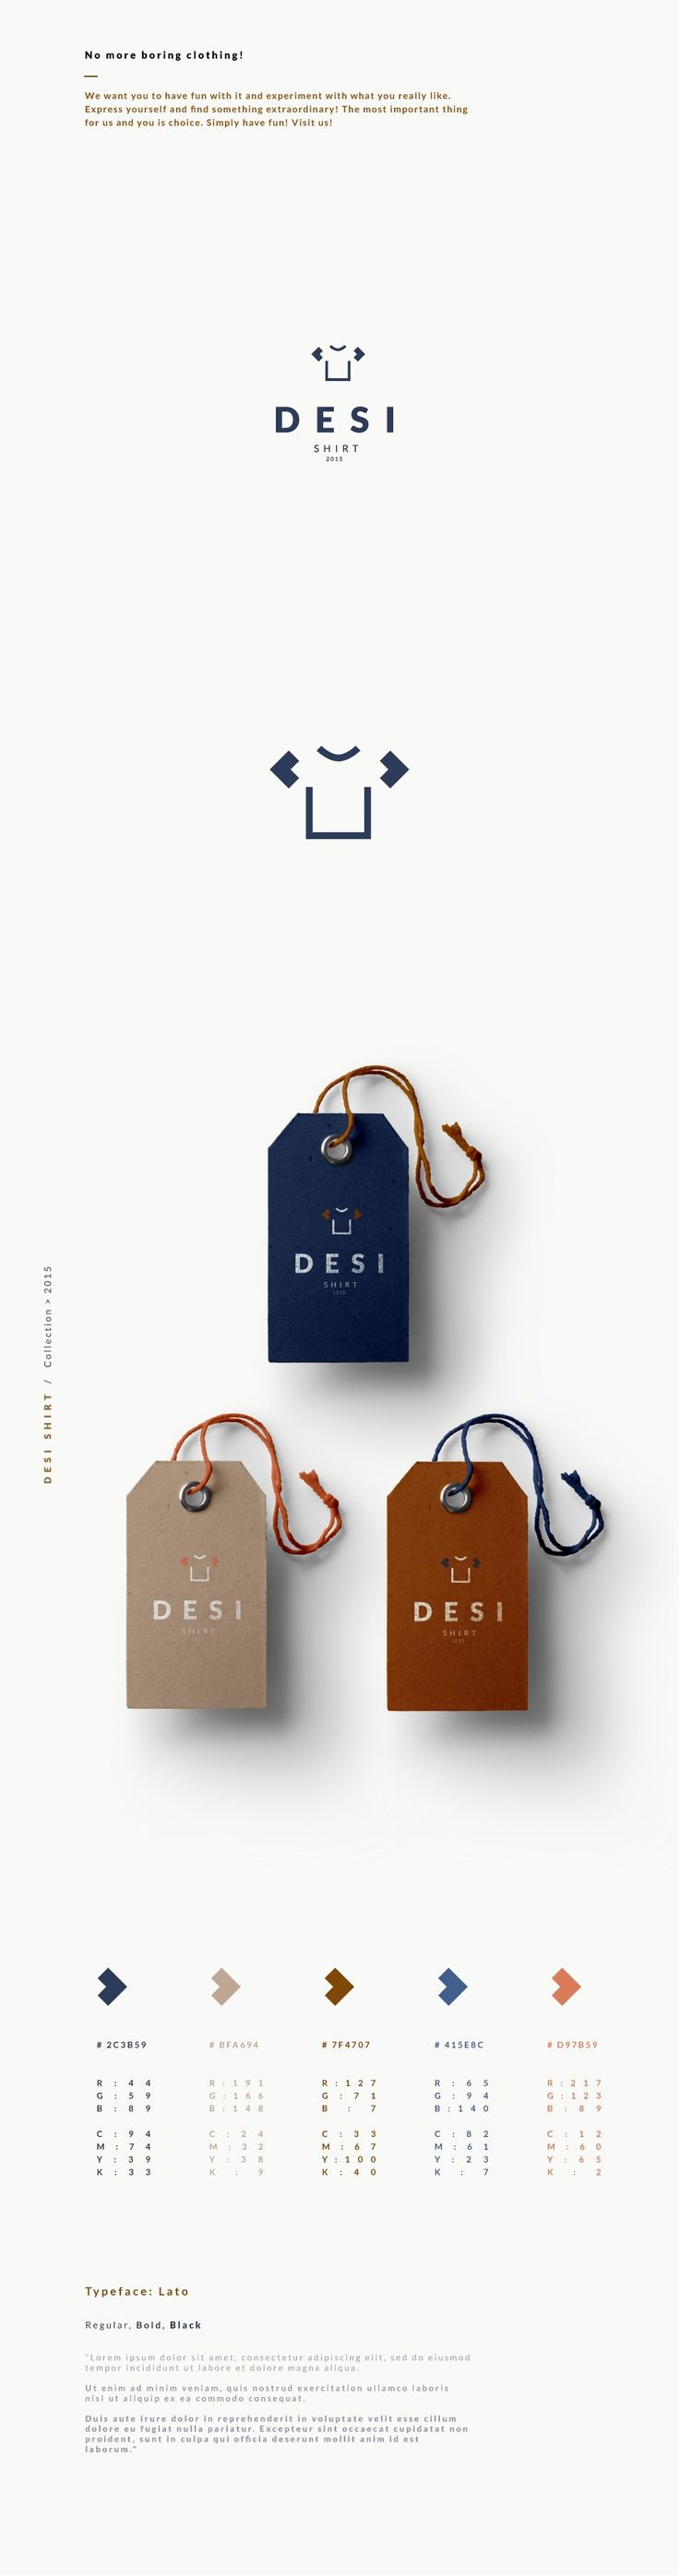 best images about logo design logos food logos desi shirt brand identity concept design by filip dueskau on behance